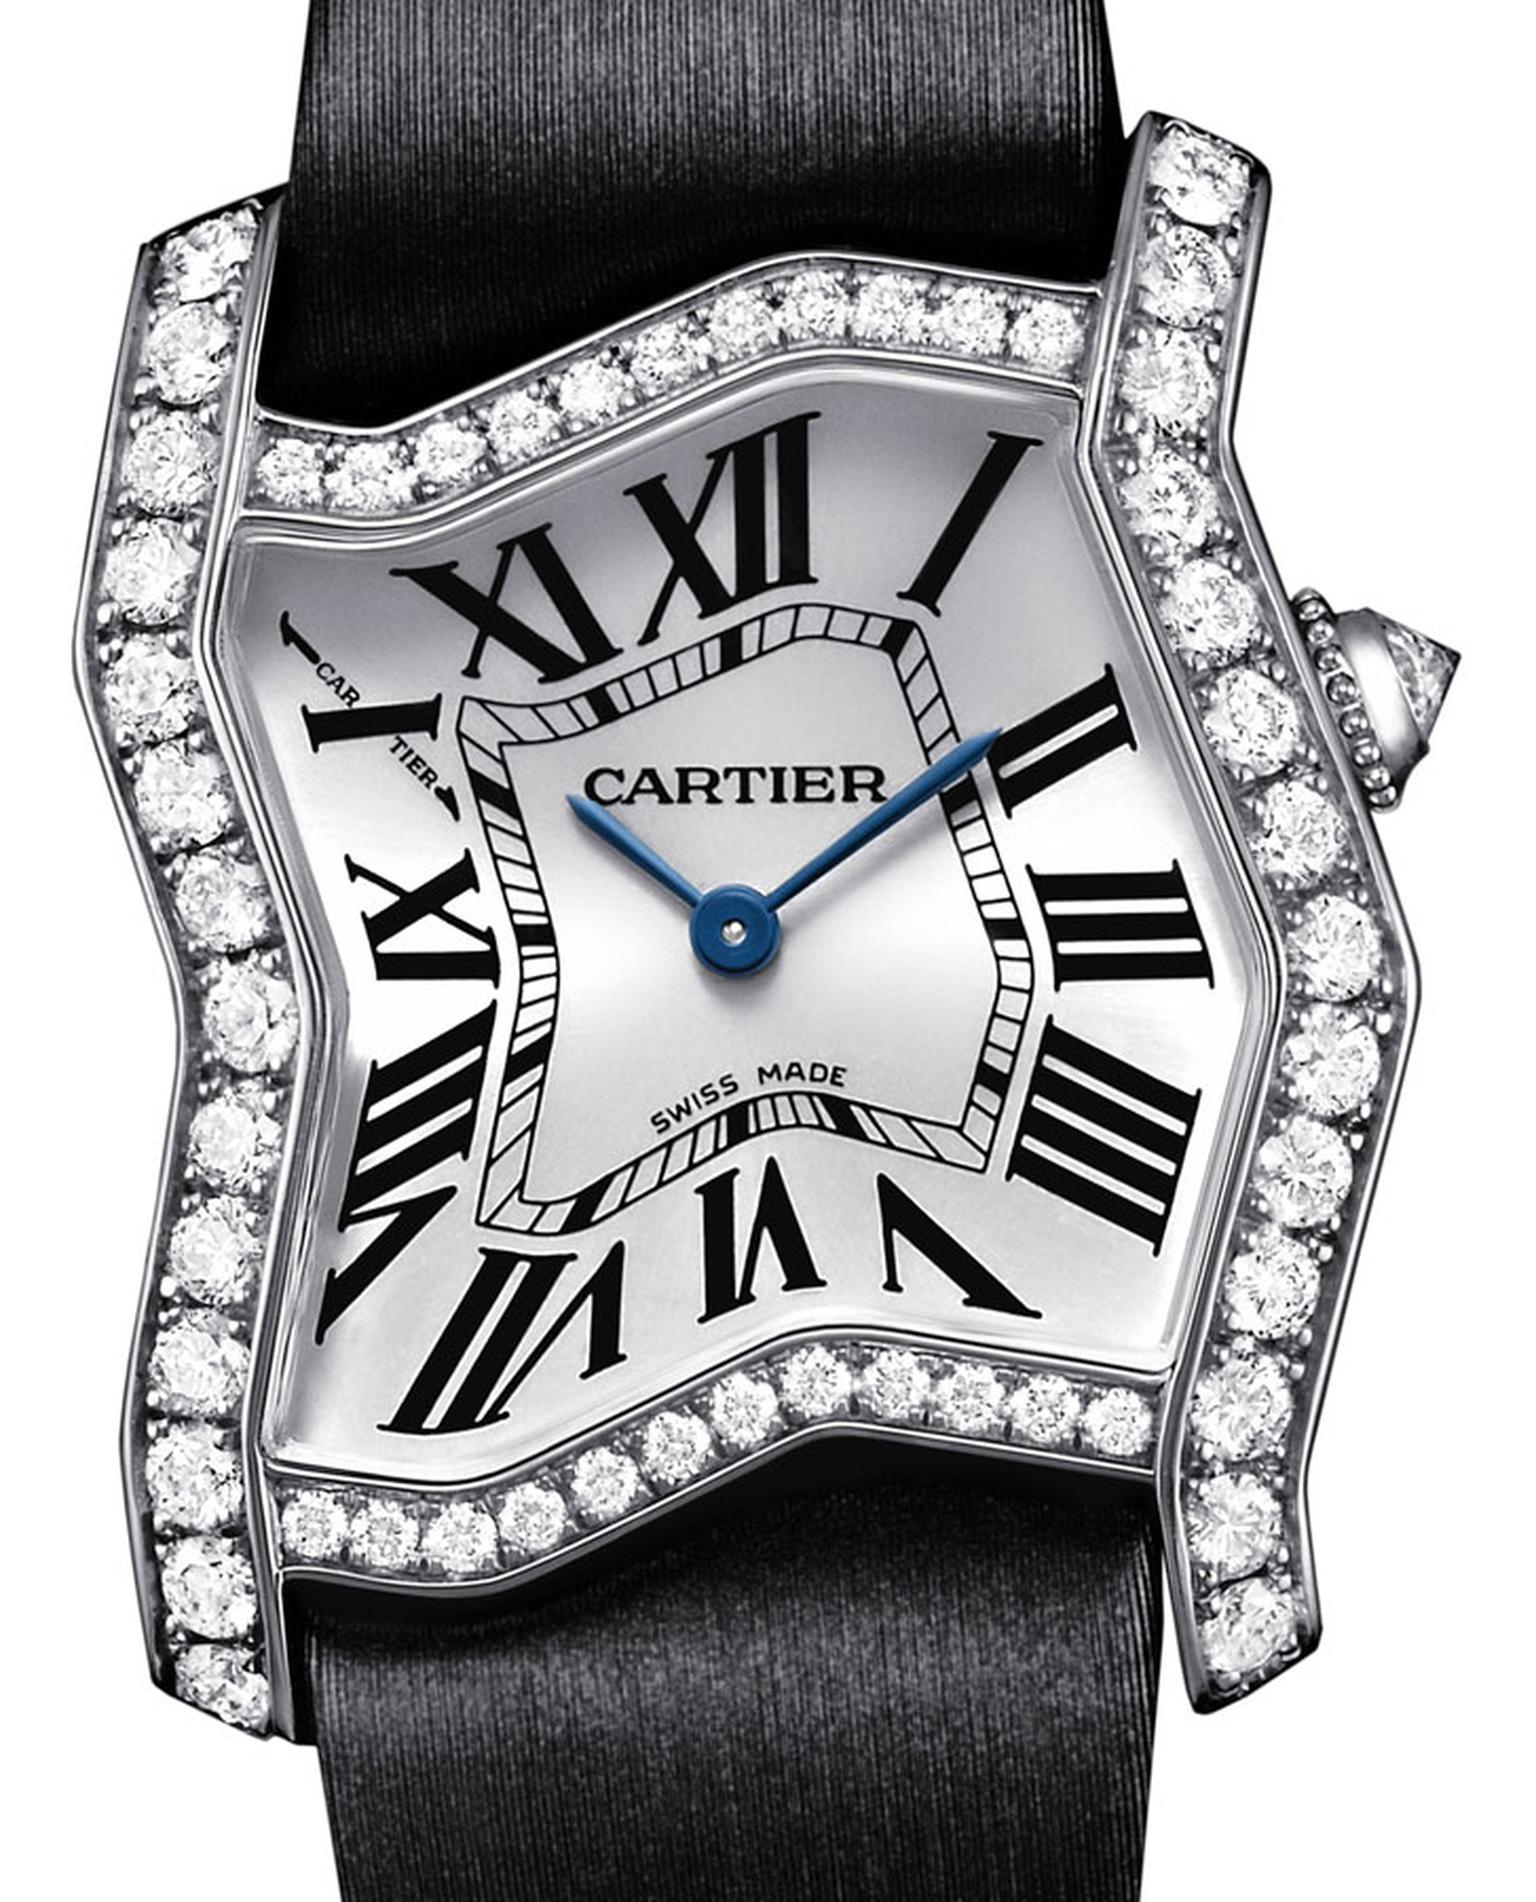 Cartier. Tank Folle watch, 18-carat rhodium-plated white gold. Price from £31,500